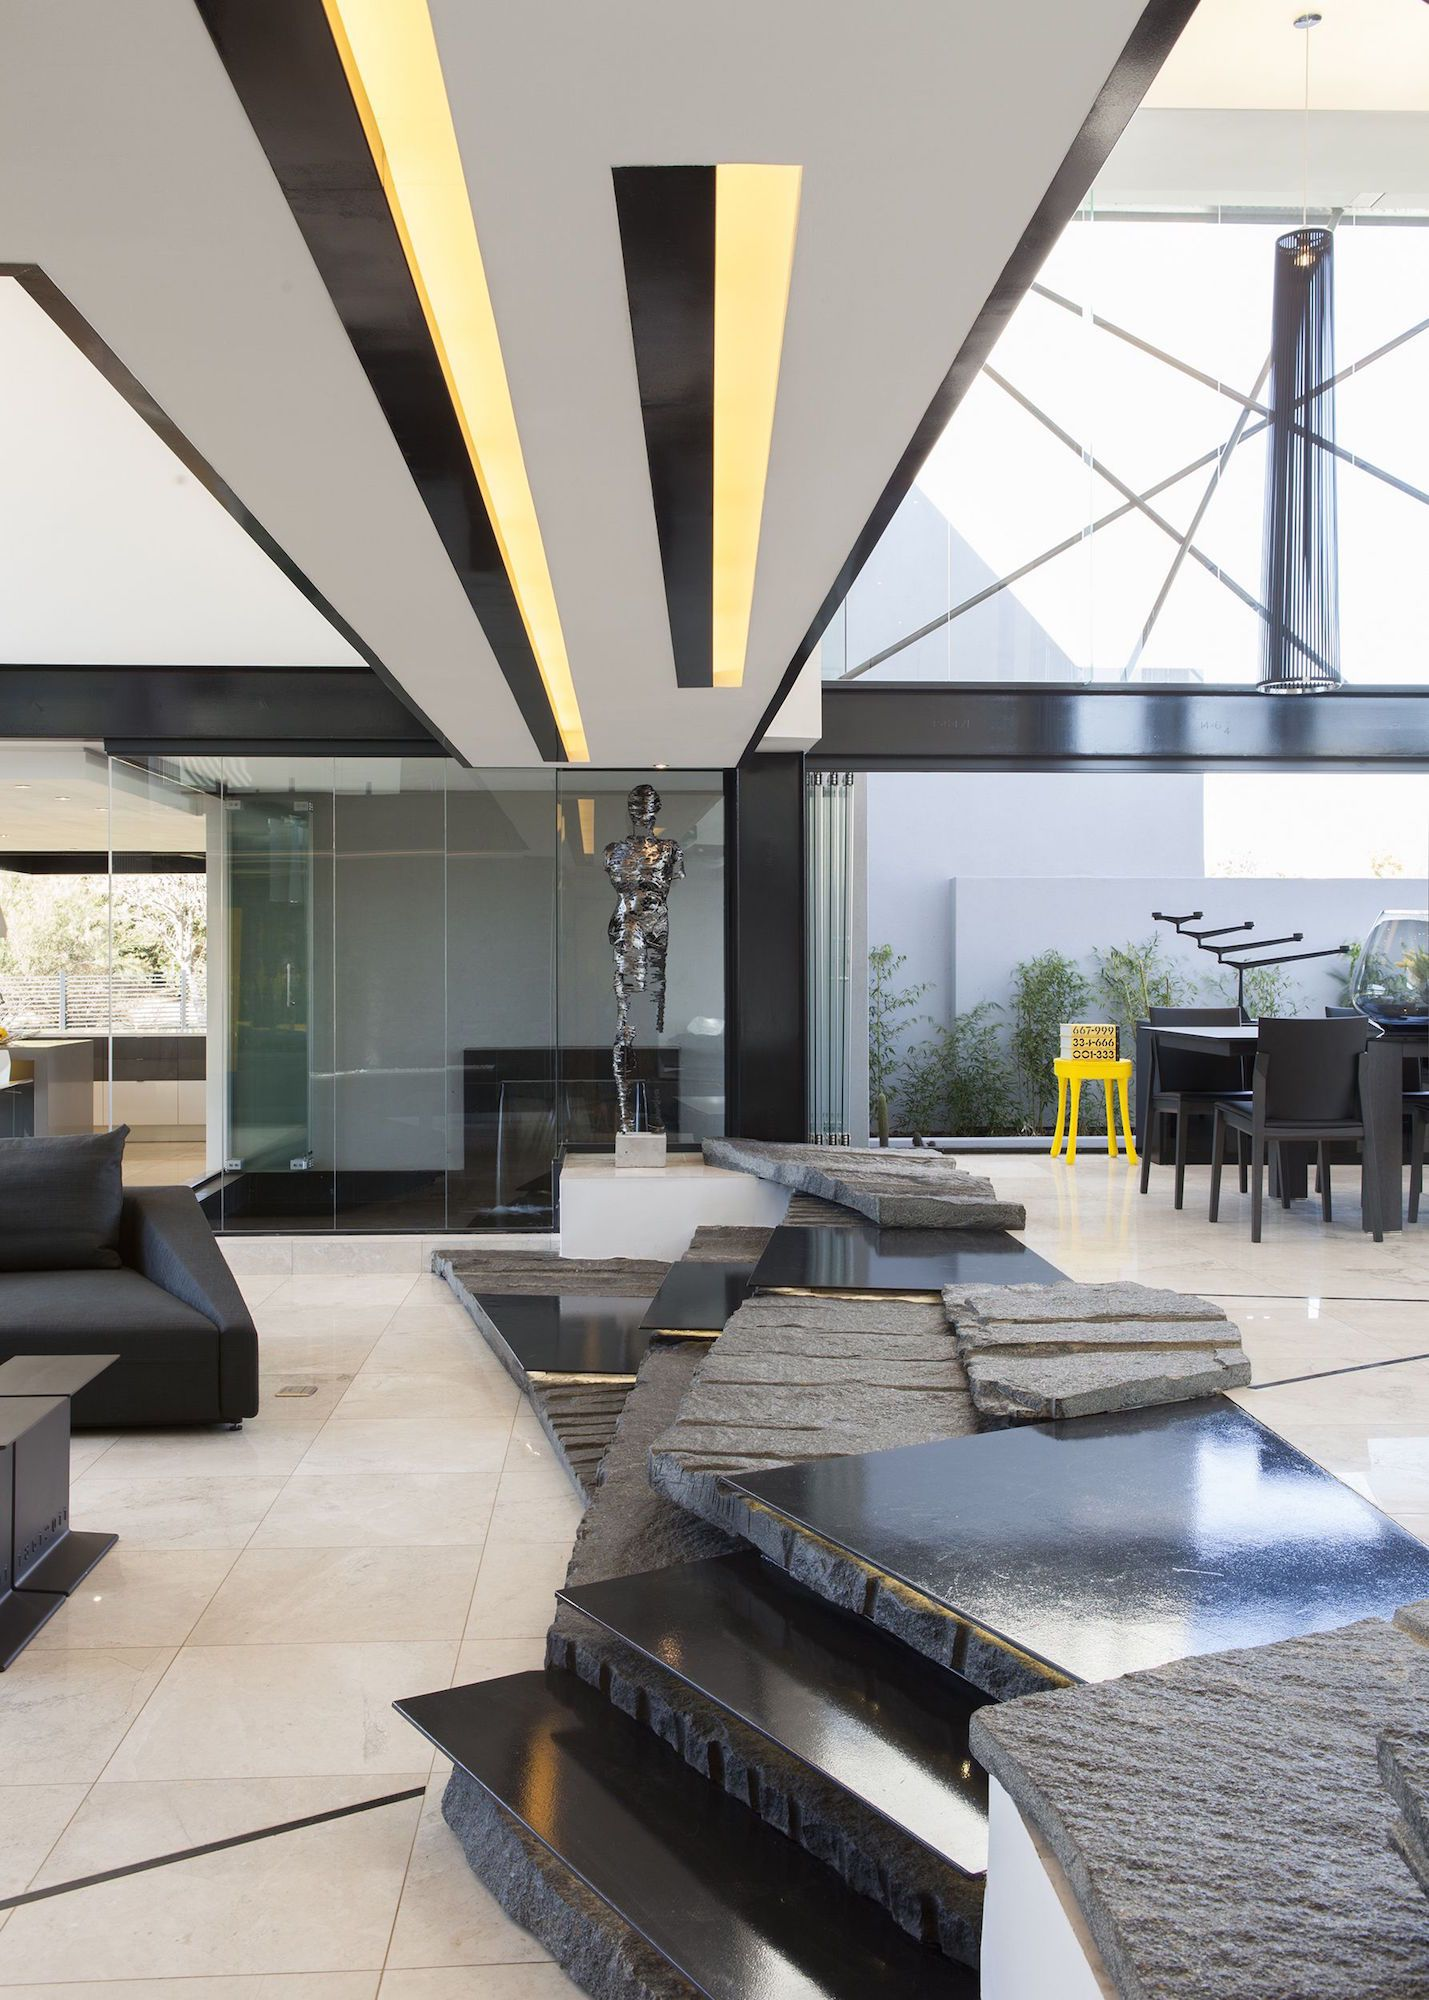 House Ber By Nico Van Der Meulen Architects And M Square